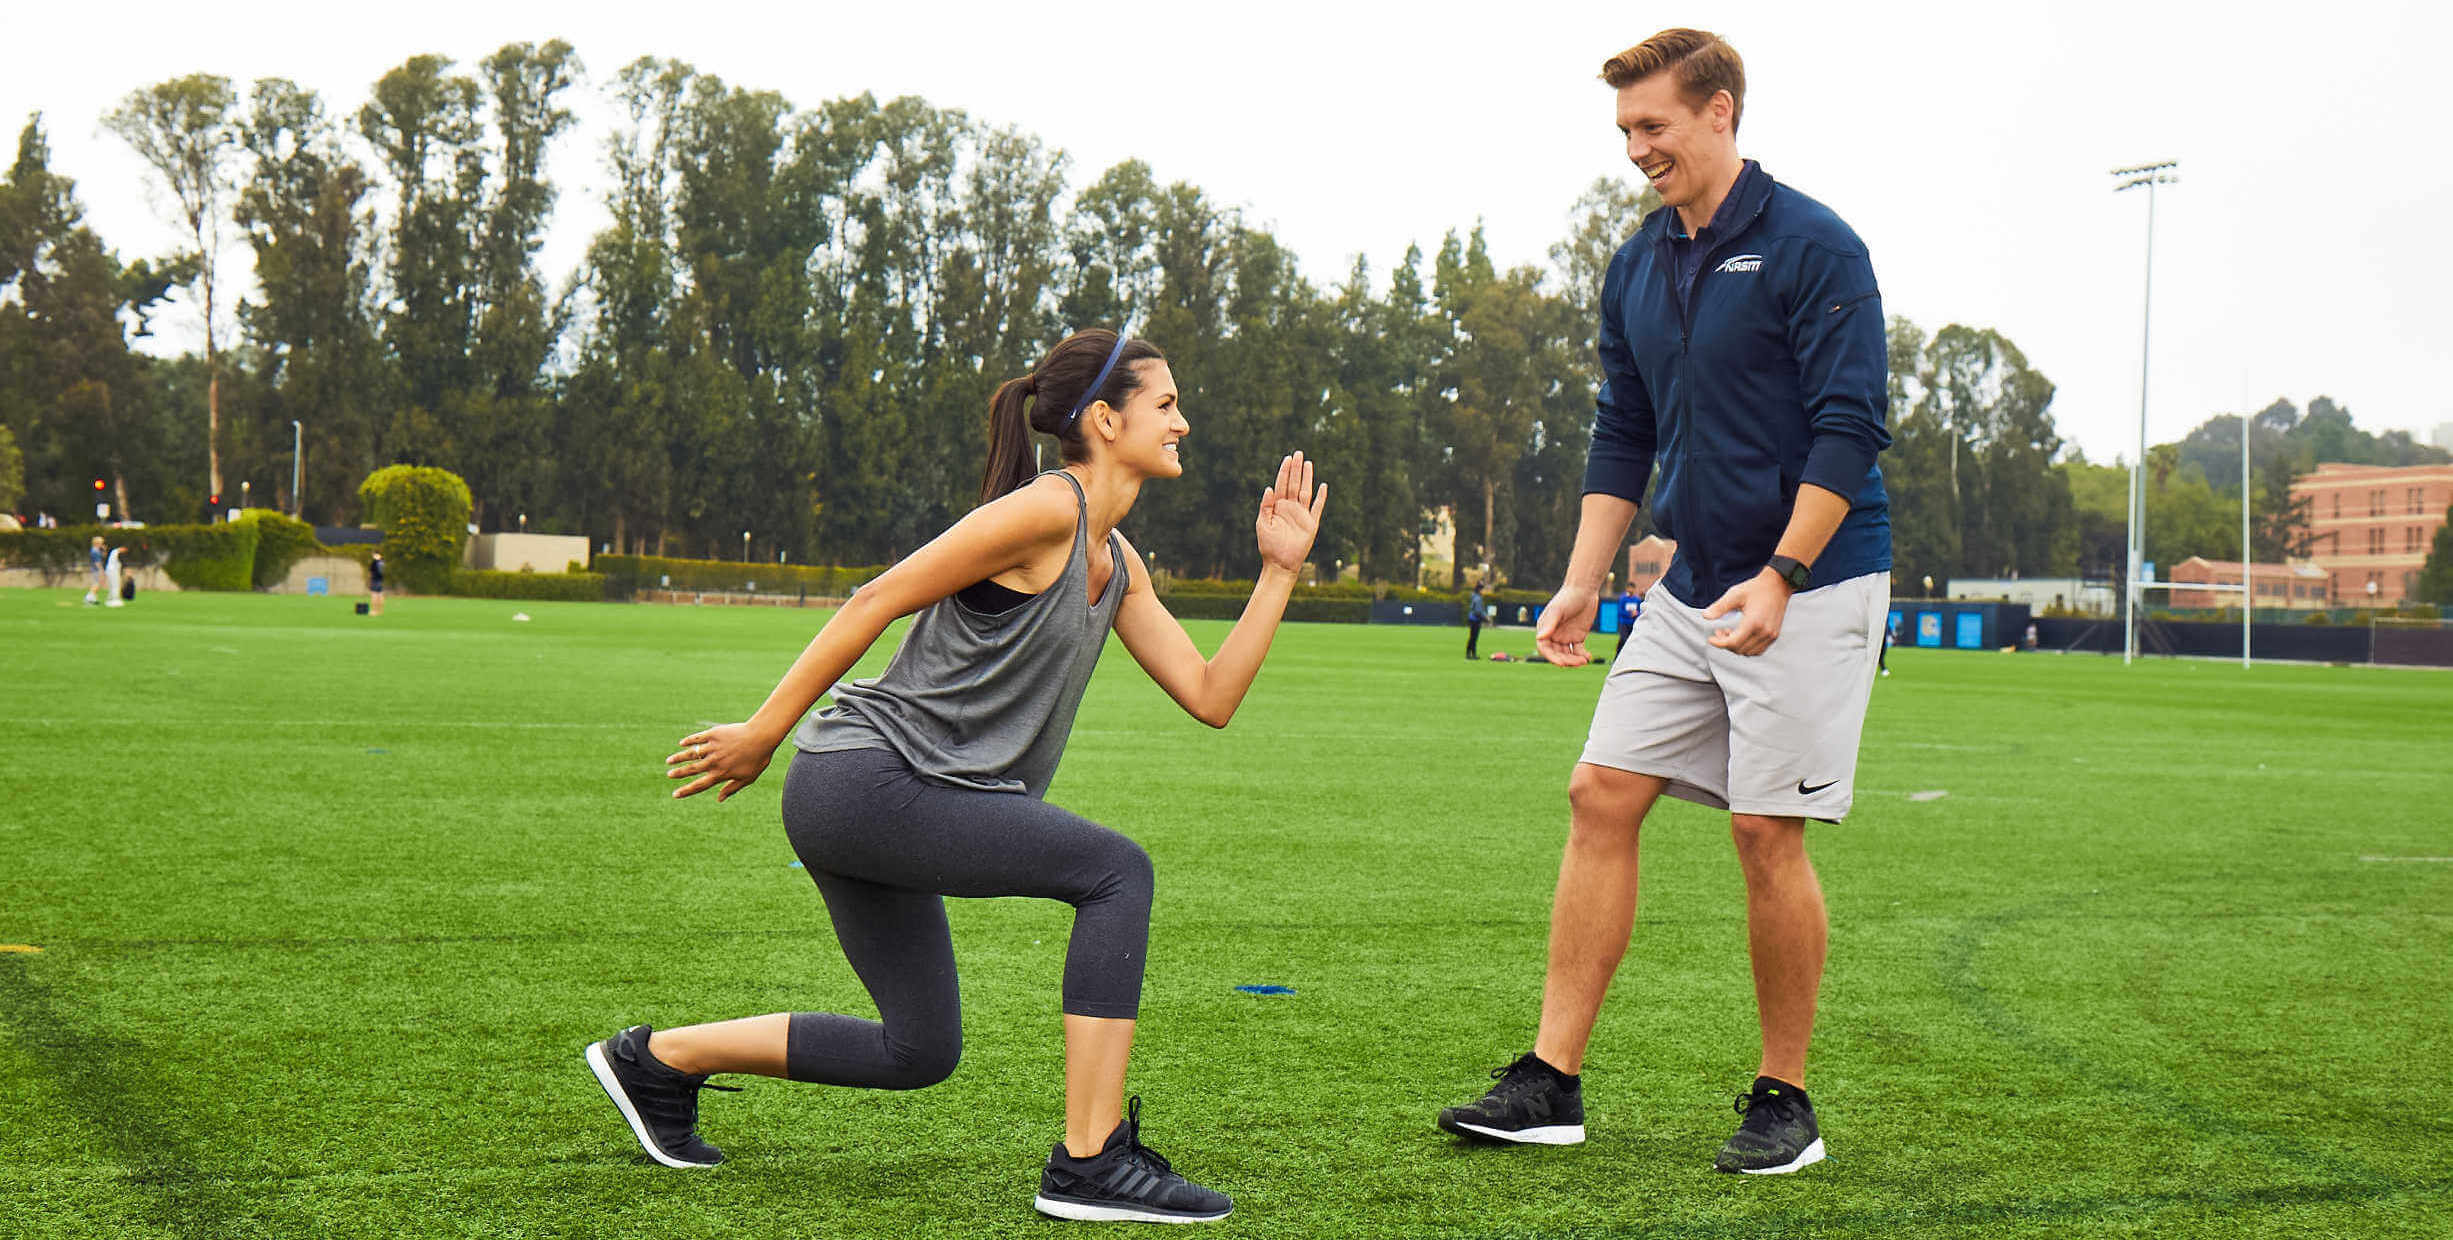 Personal trainer working with client outdoors